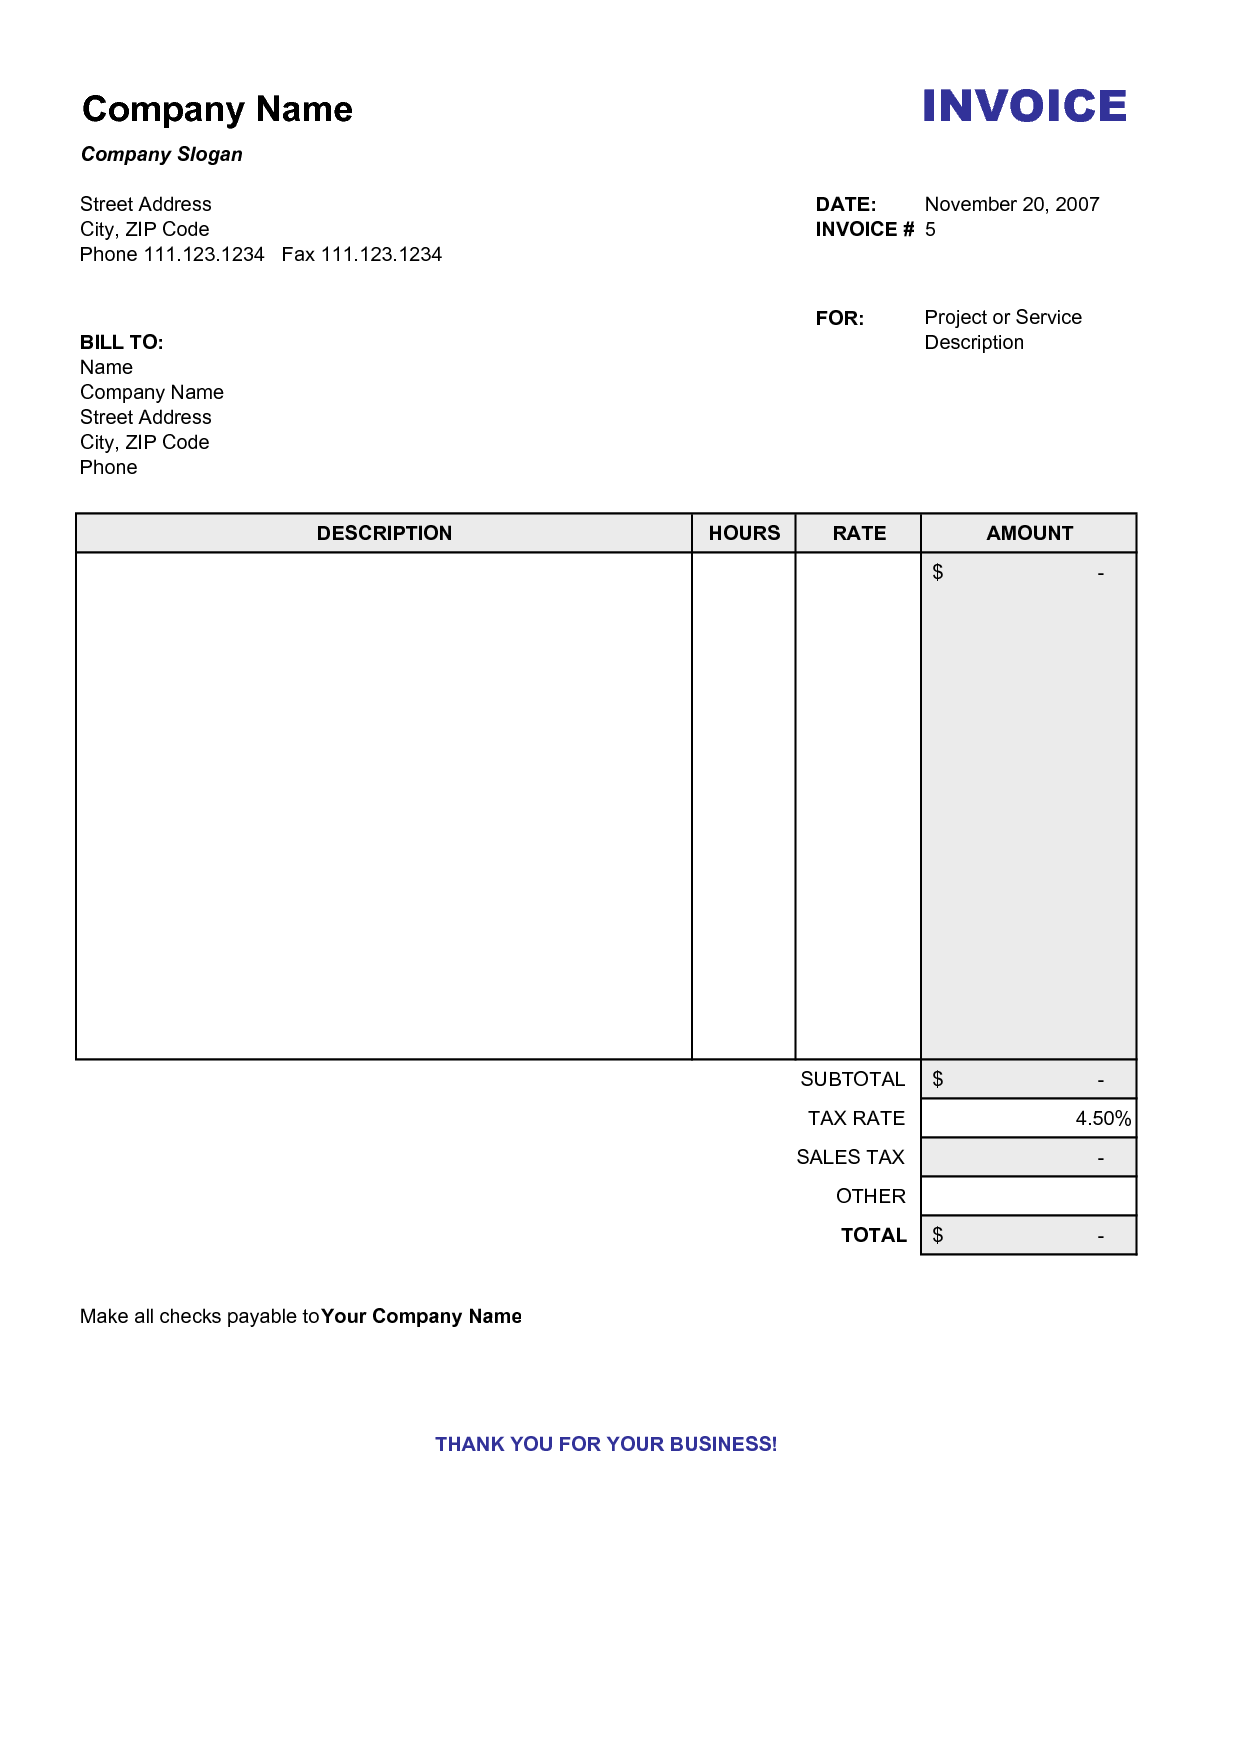 Billing Spreadsheet Template and Blank Billing Invoice Scope Of Work Template organization